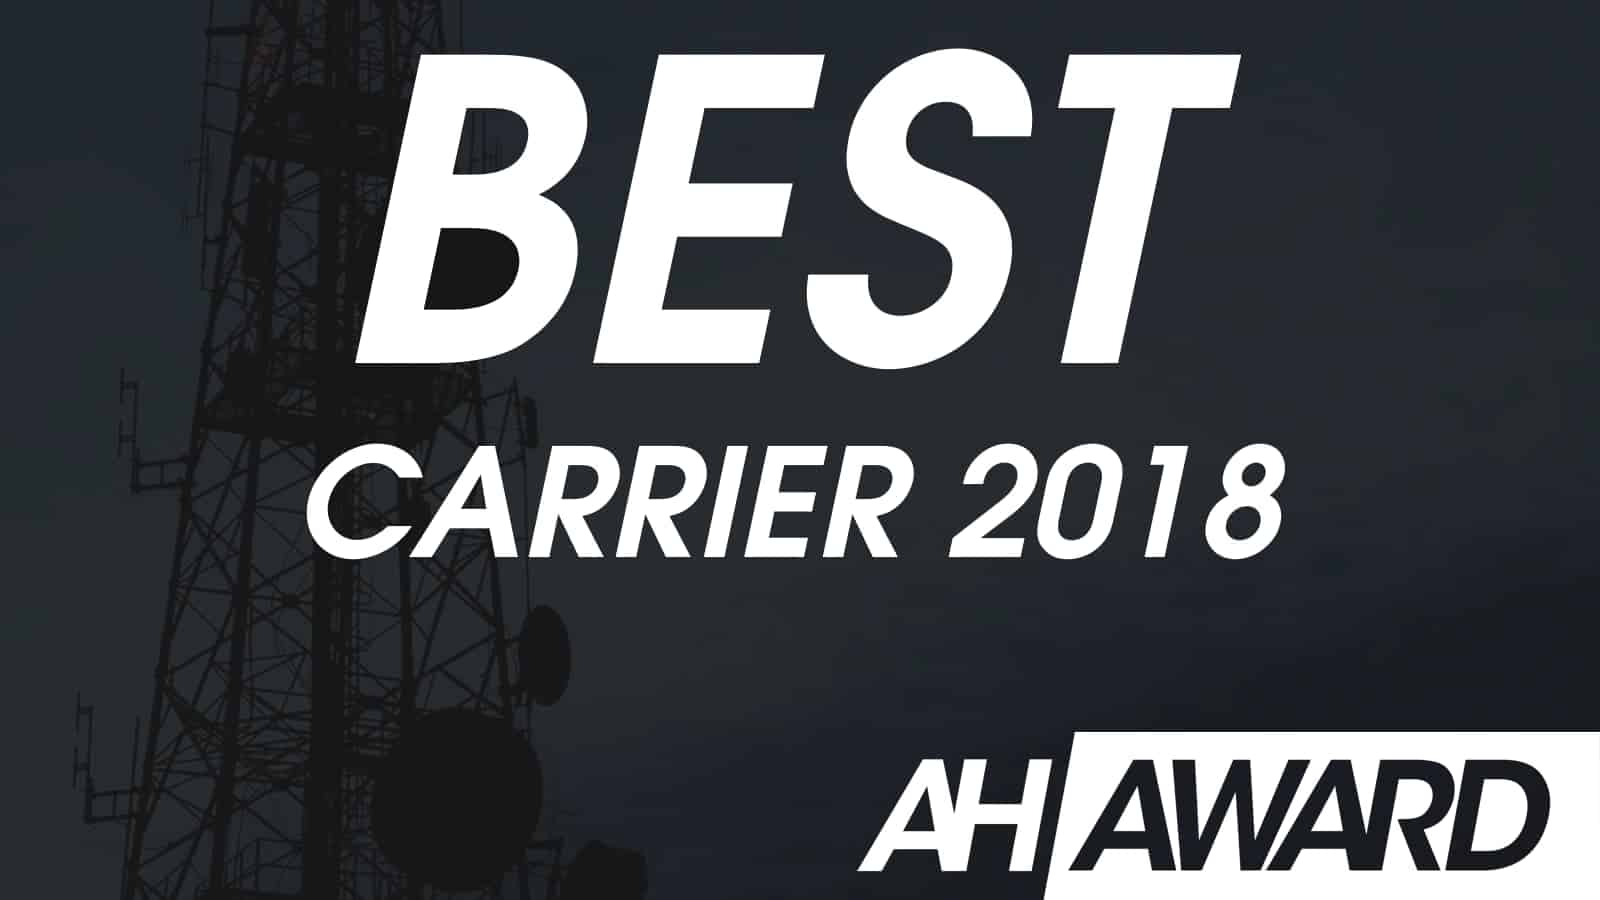 ANDROID HEADLINES BEST CARRIER 2018